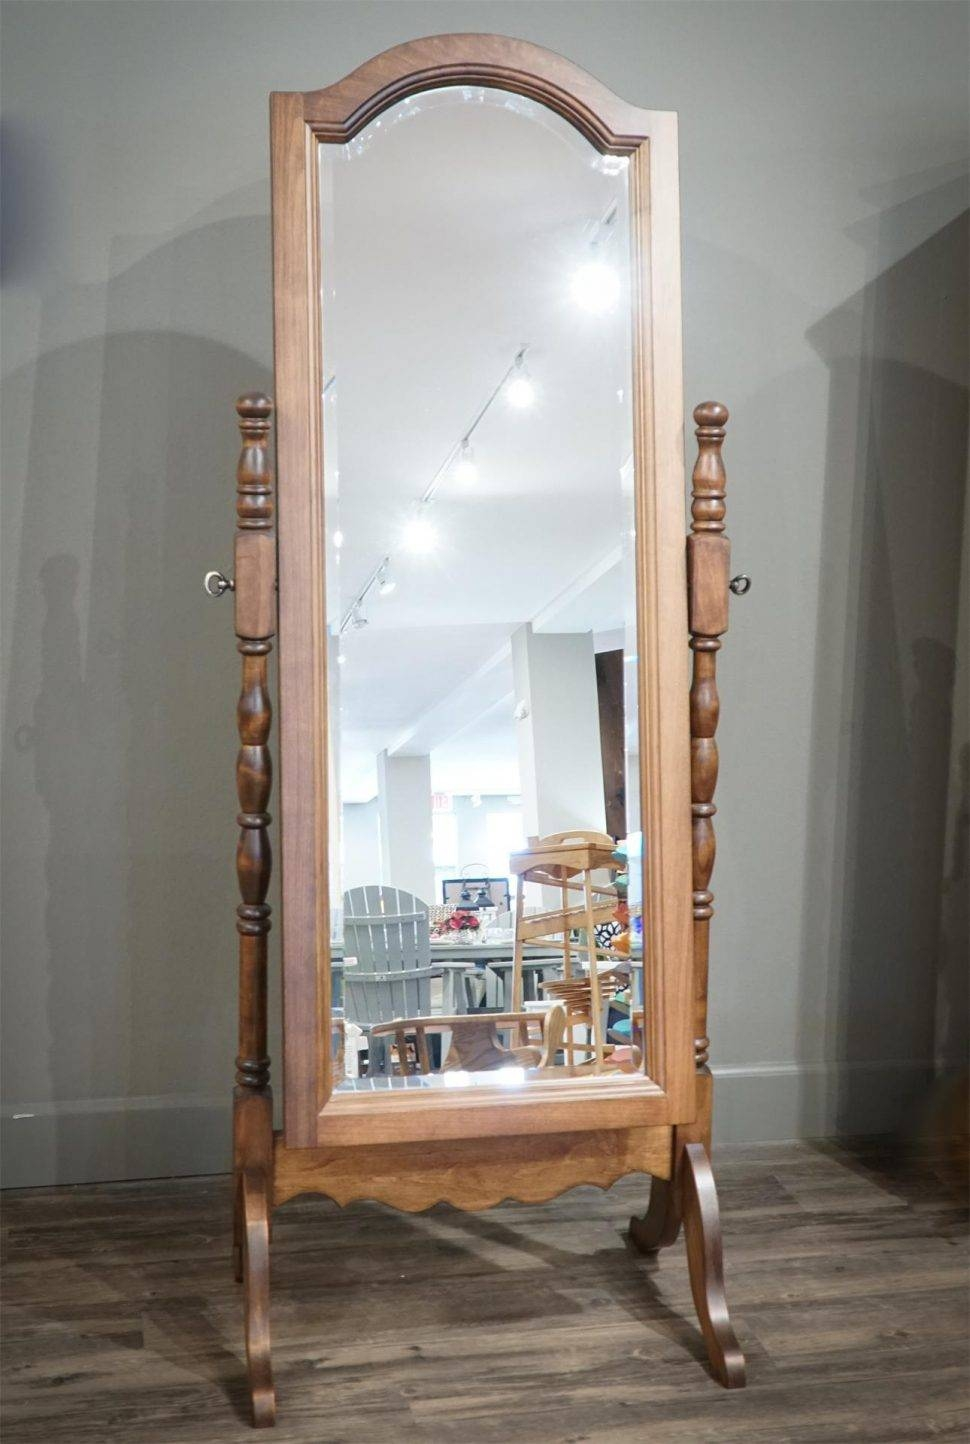 Bedroom Furniture : Free Standing Mirror Wood Framed Mirrors inside Unique Mirrors (Image 11 of 25)